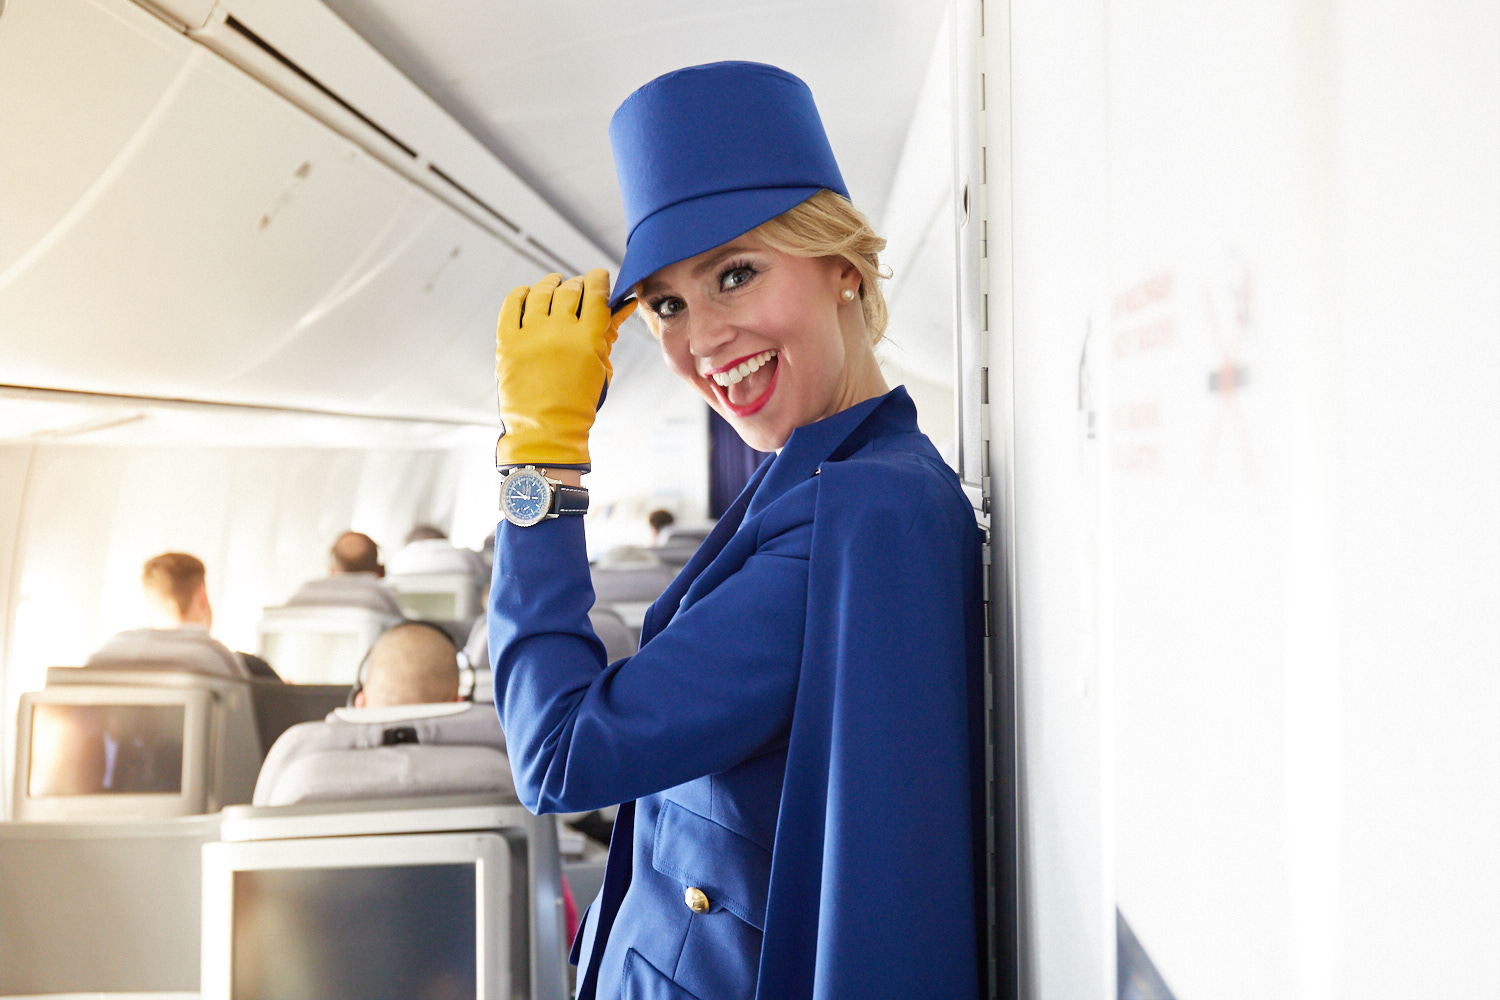 Vintag estyle is in fashion! Picture: Lufthansa